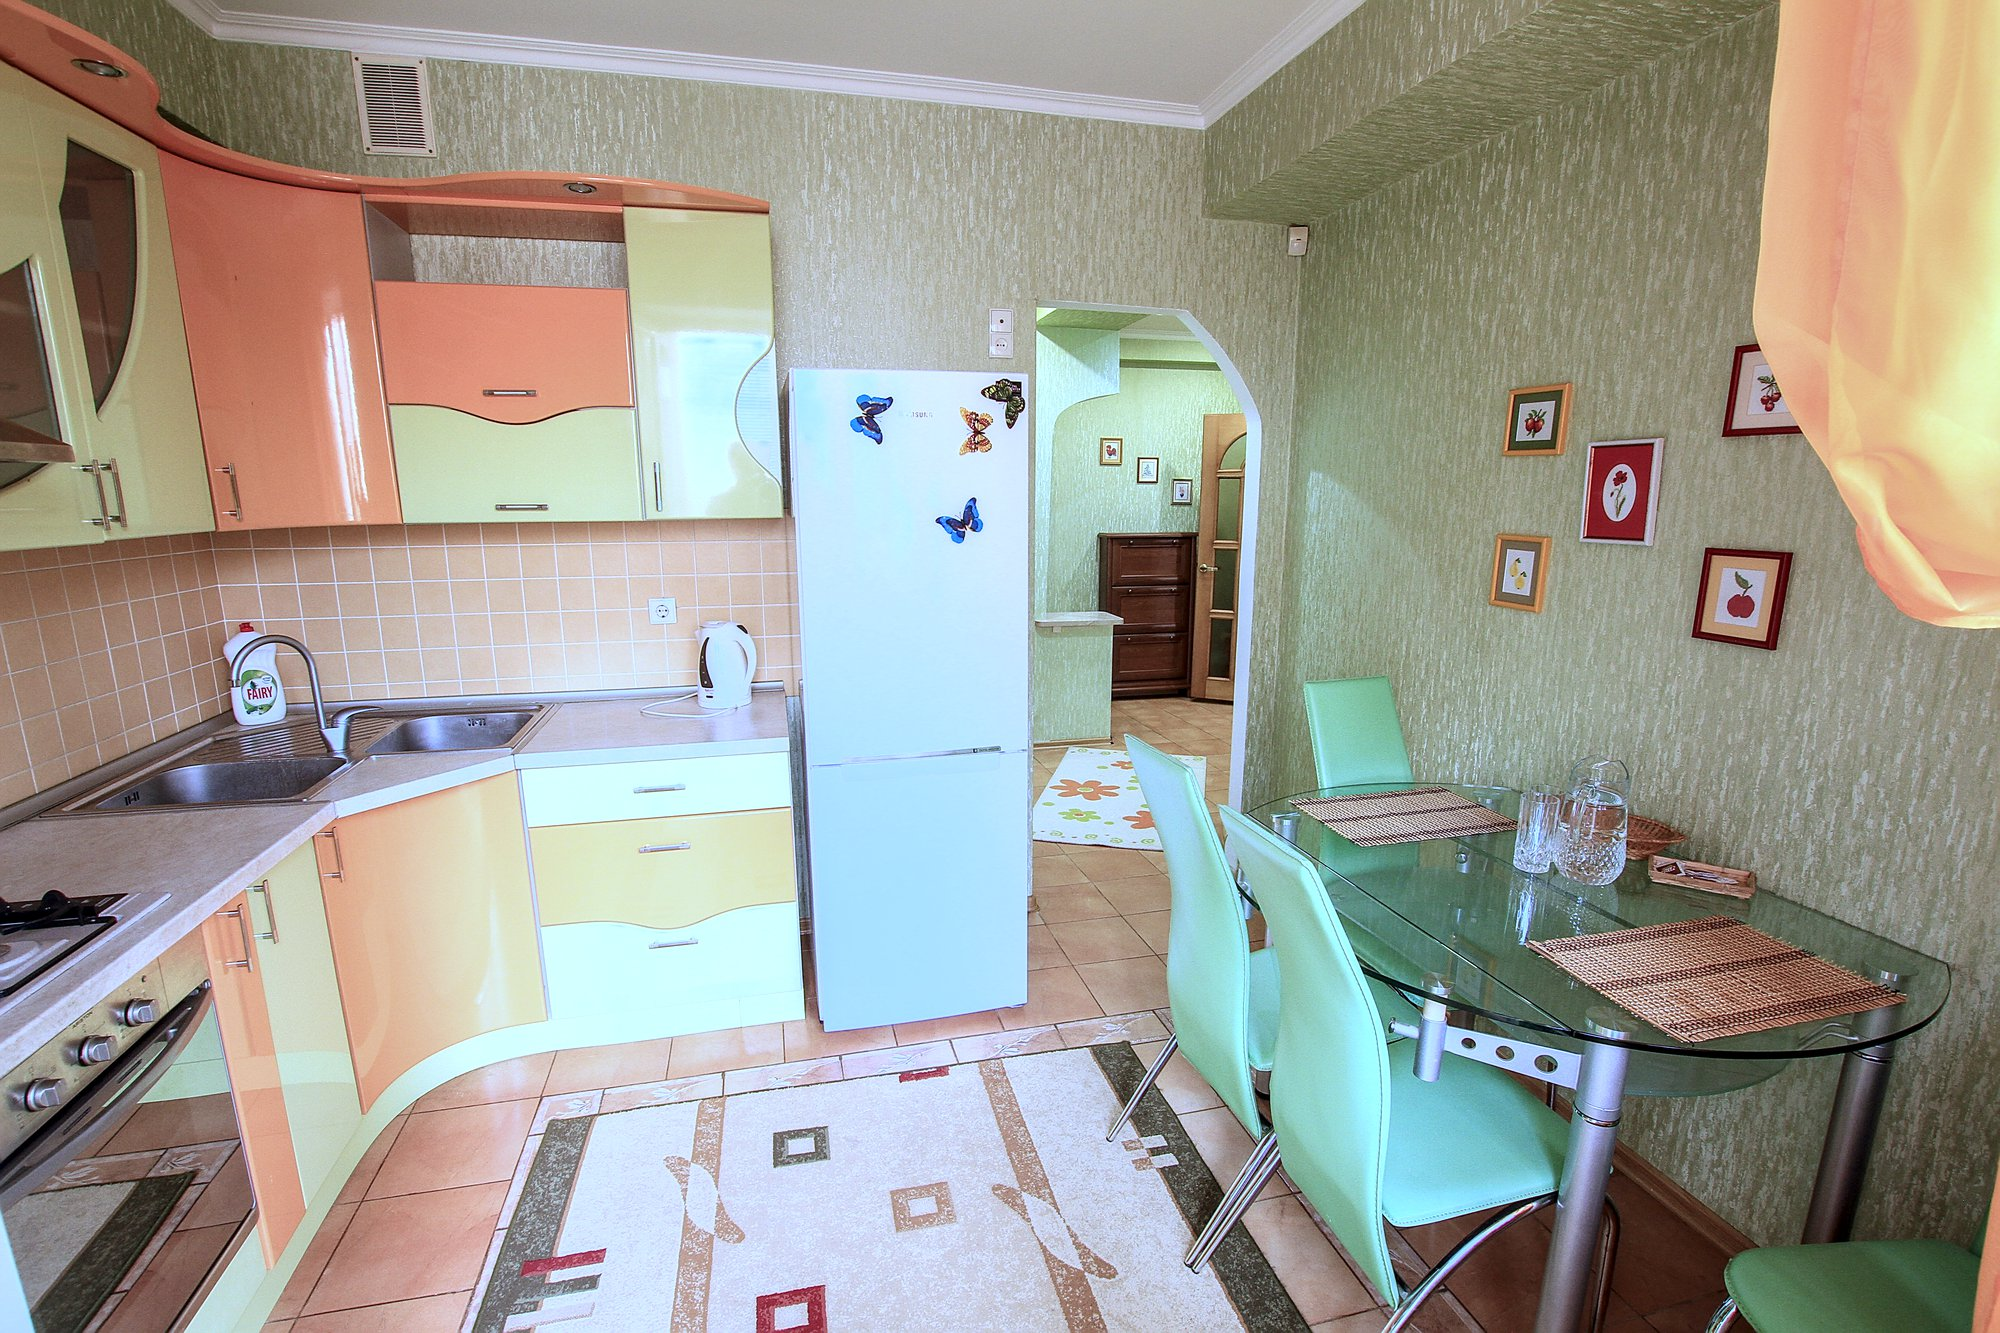 Rent a studio with a flowered terrace: 1 room, 1 bedroom, 53 m²